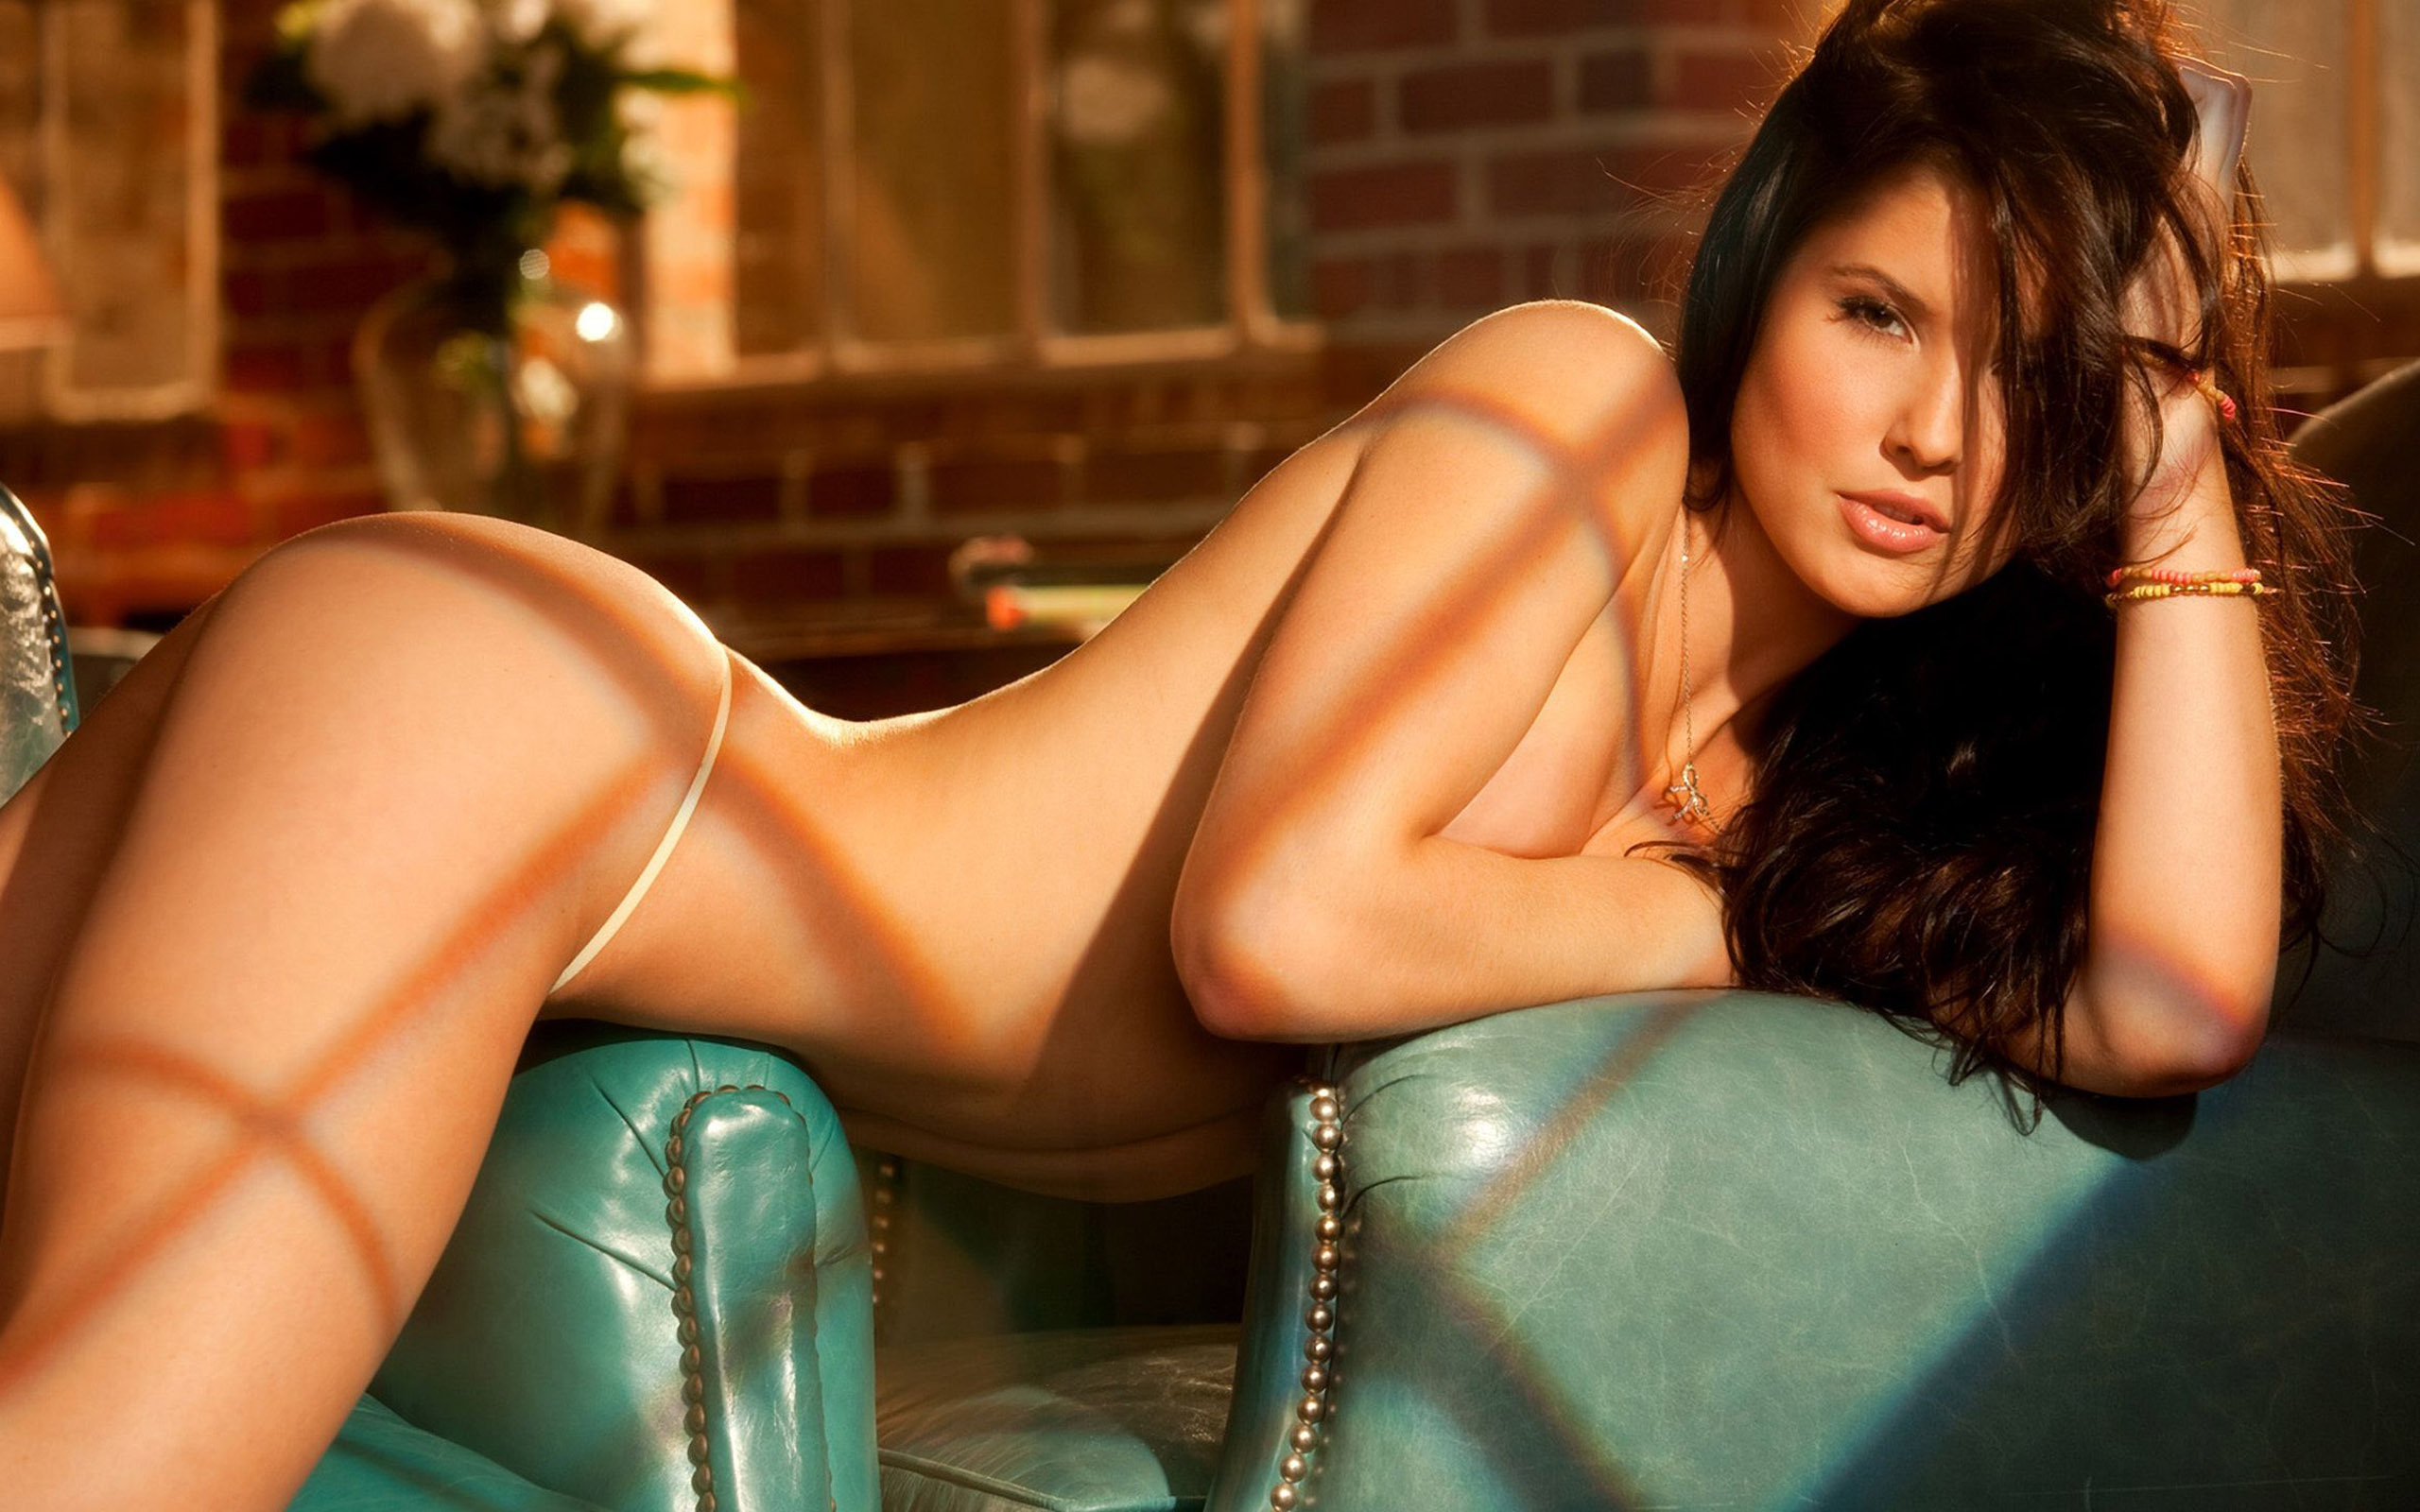 Amanda Cerny Fucking Video wallpaper model, brunette, couch, amanda cerny, ass, tanned